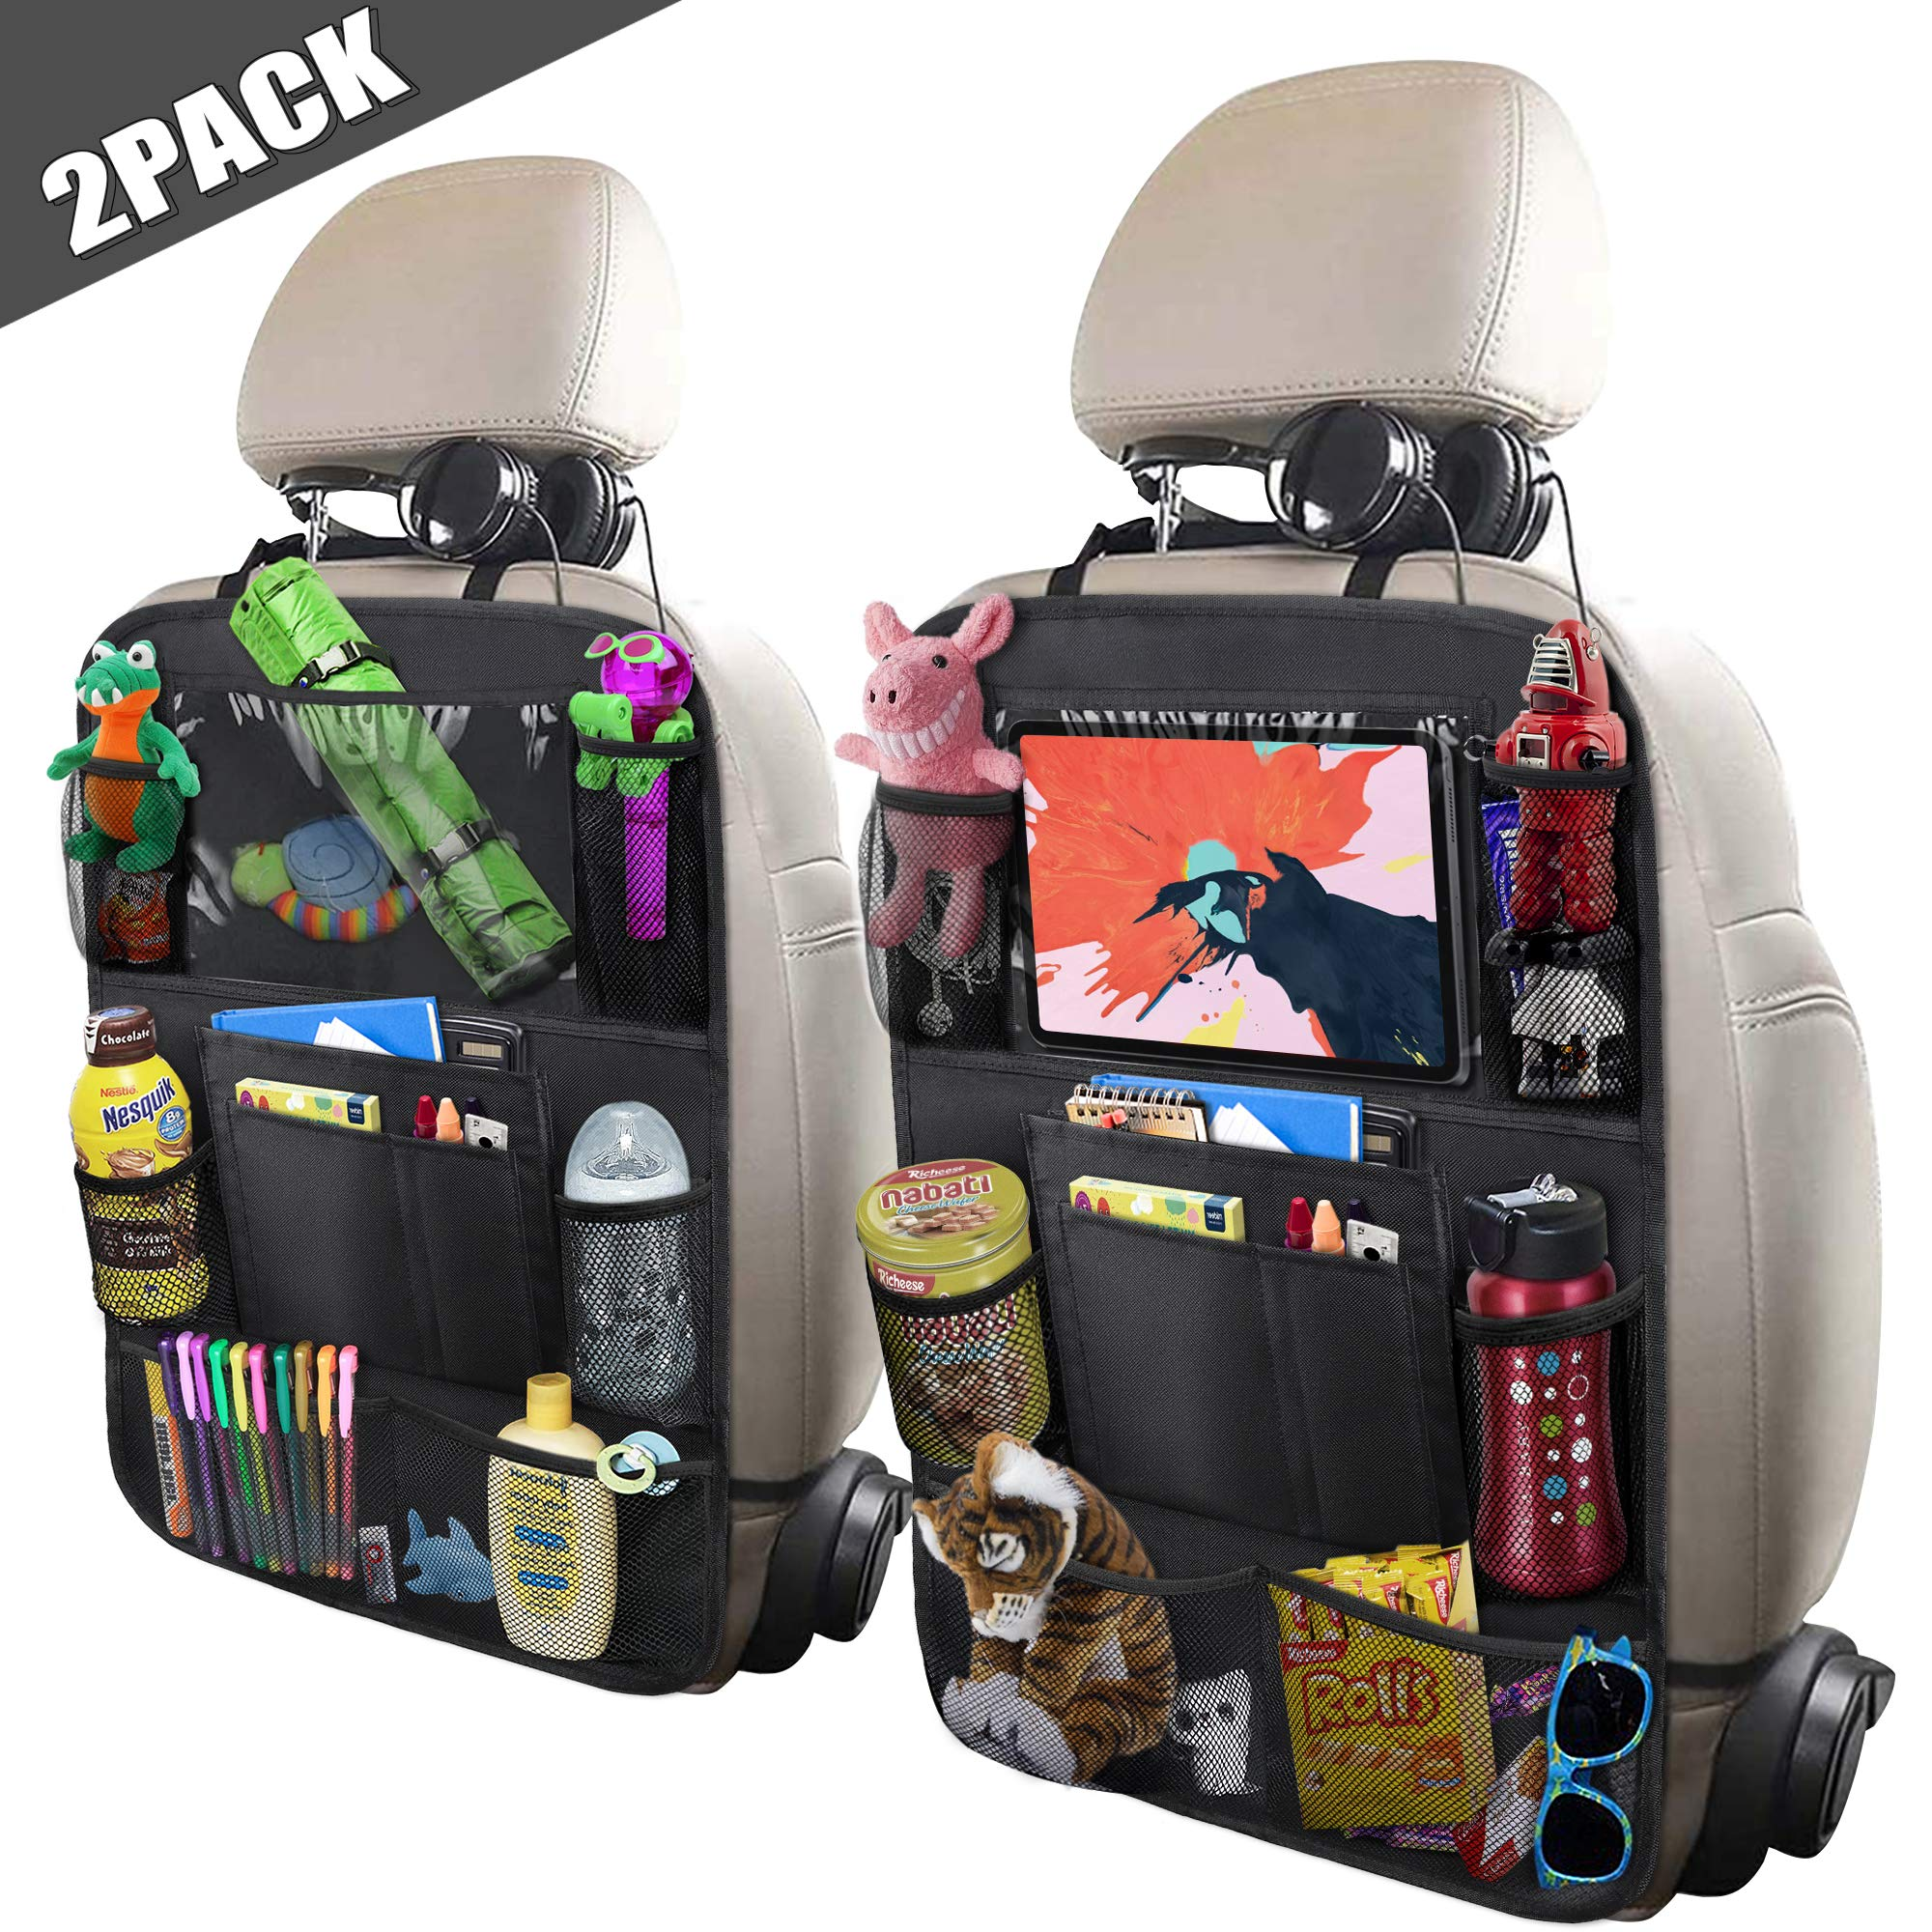 ULEEKA Car Backseat Organizer with 10'' Tablet Holder + 9 Storage Pockets Seat Back Protectors Kick Mats for Toy Bottle Book Drink, Universal Fit Travel Accessories for Kid & Toddlers (2 Pack) by ULEEKA